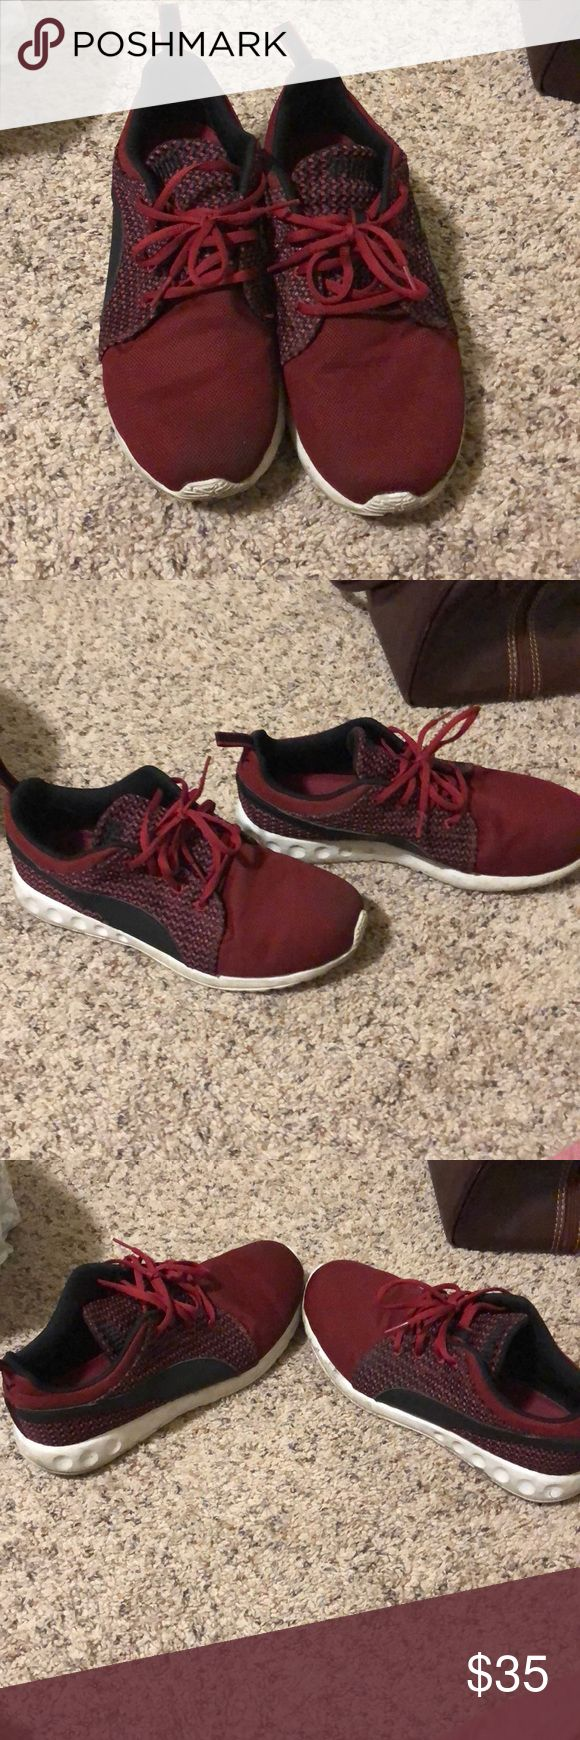 Men's Red Puma Running Shoes Red men's running shoes Puma Shoes Athletic Shoes